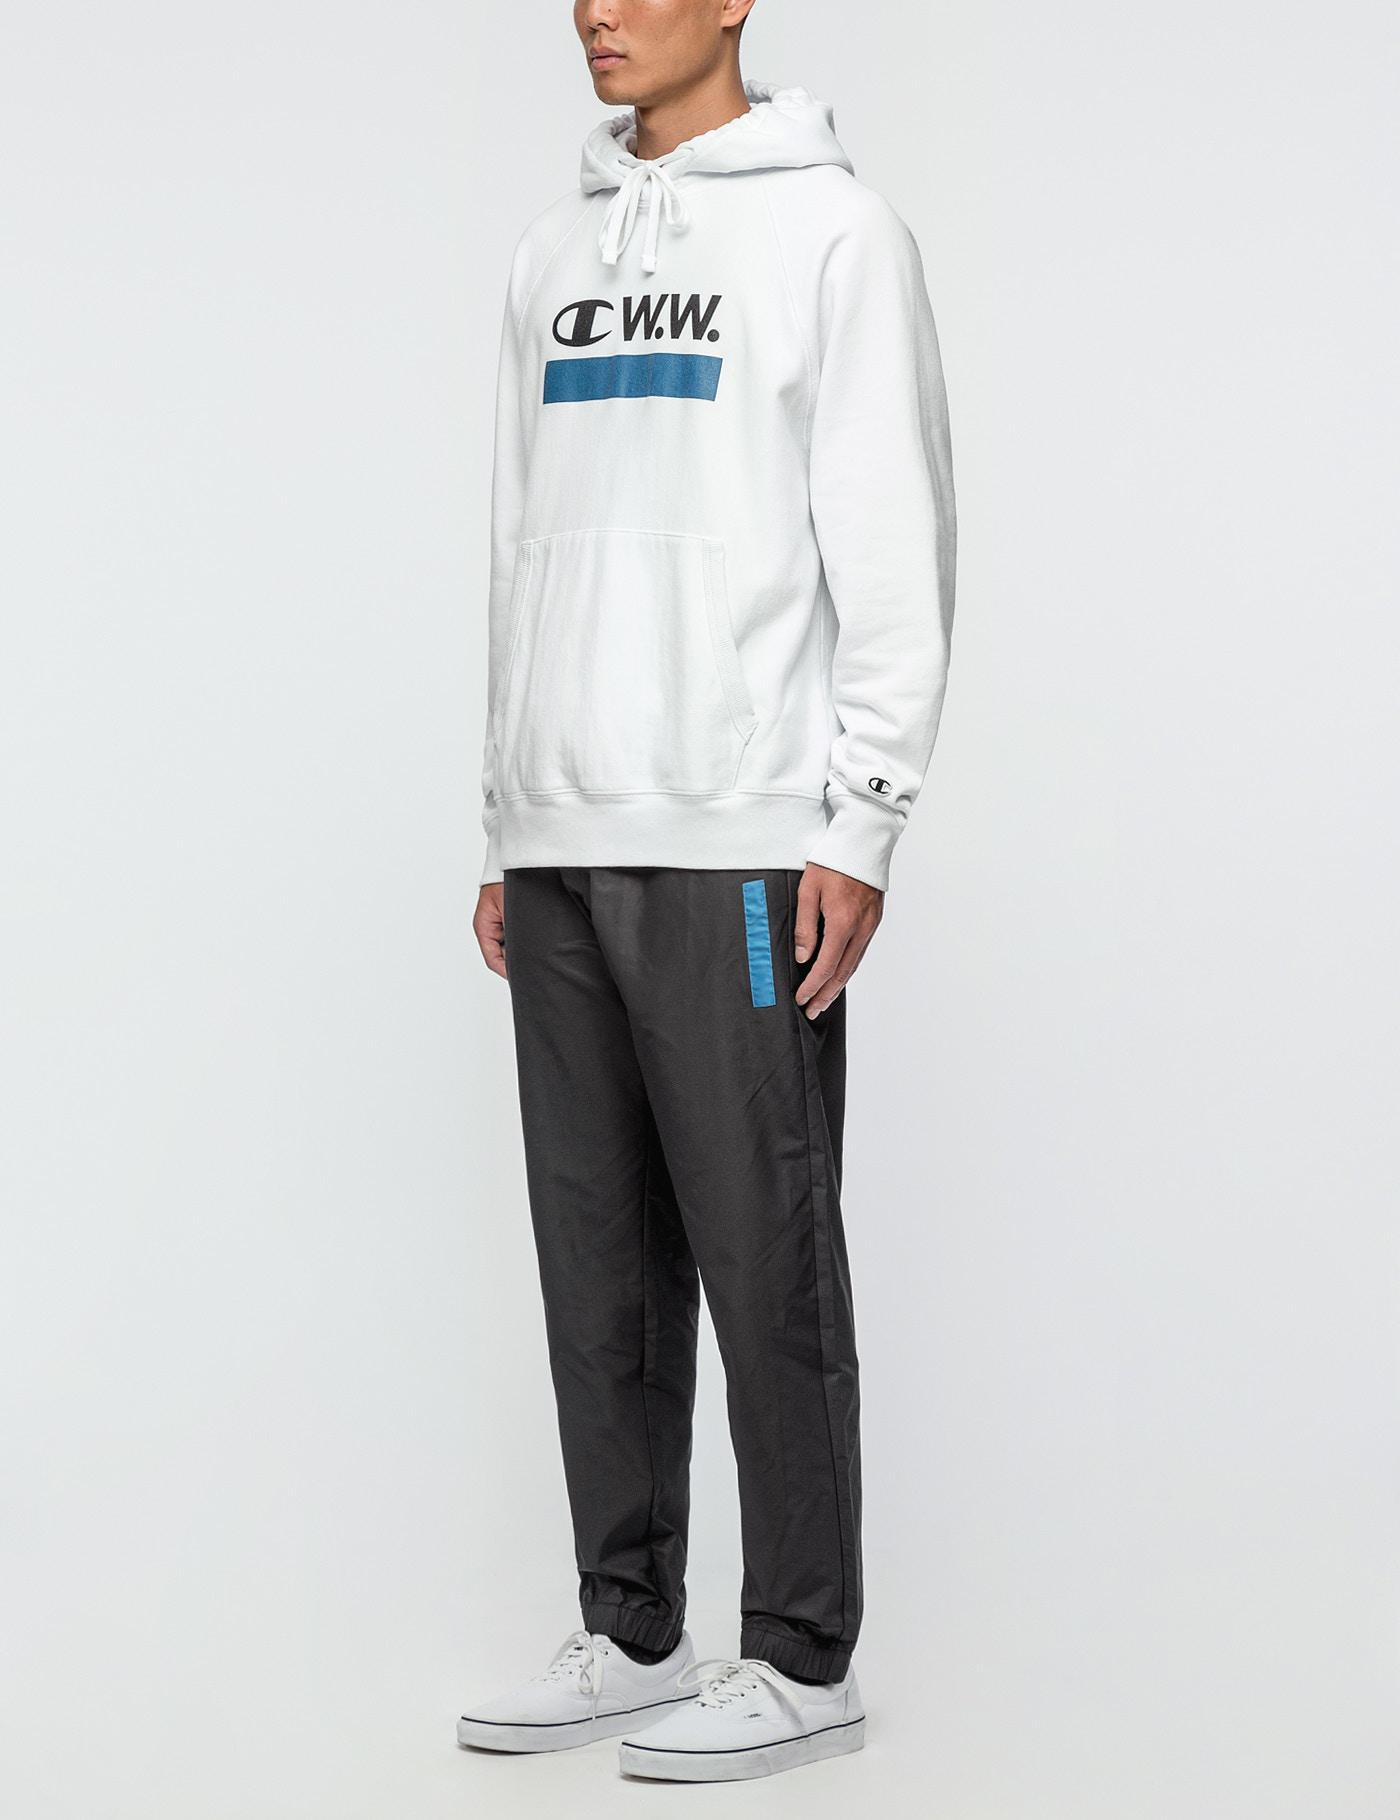 Champion Champion X Wood Wood Hoodie in White for Men - Lyst